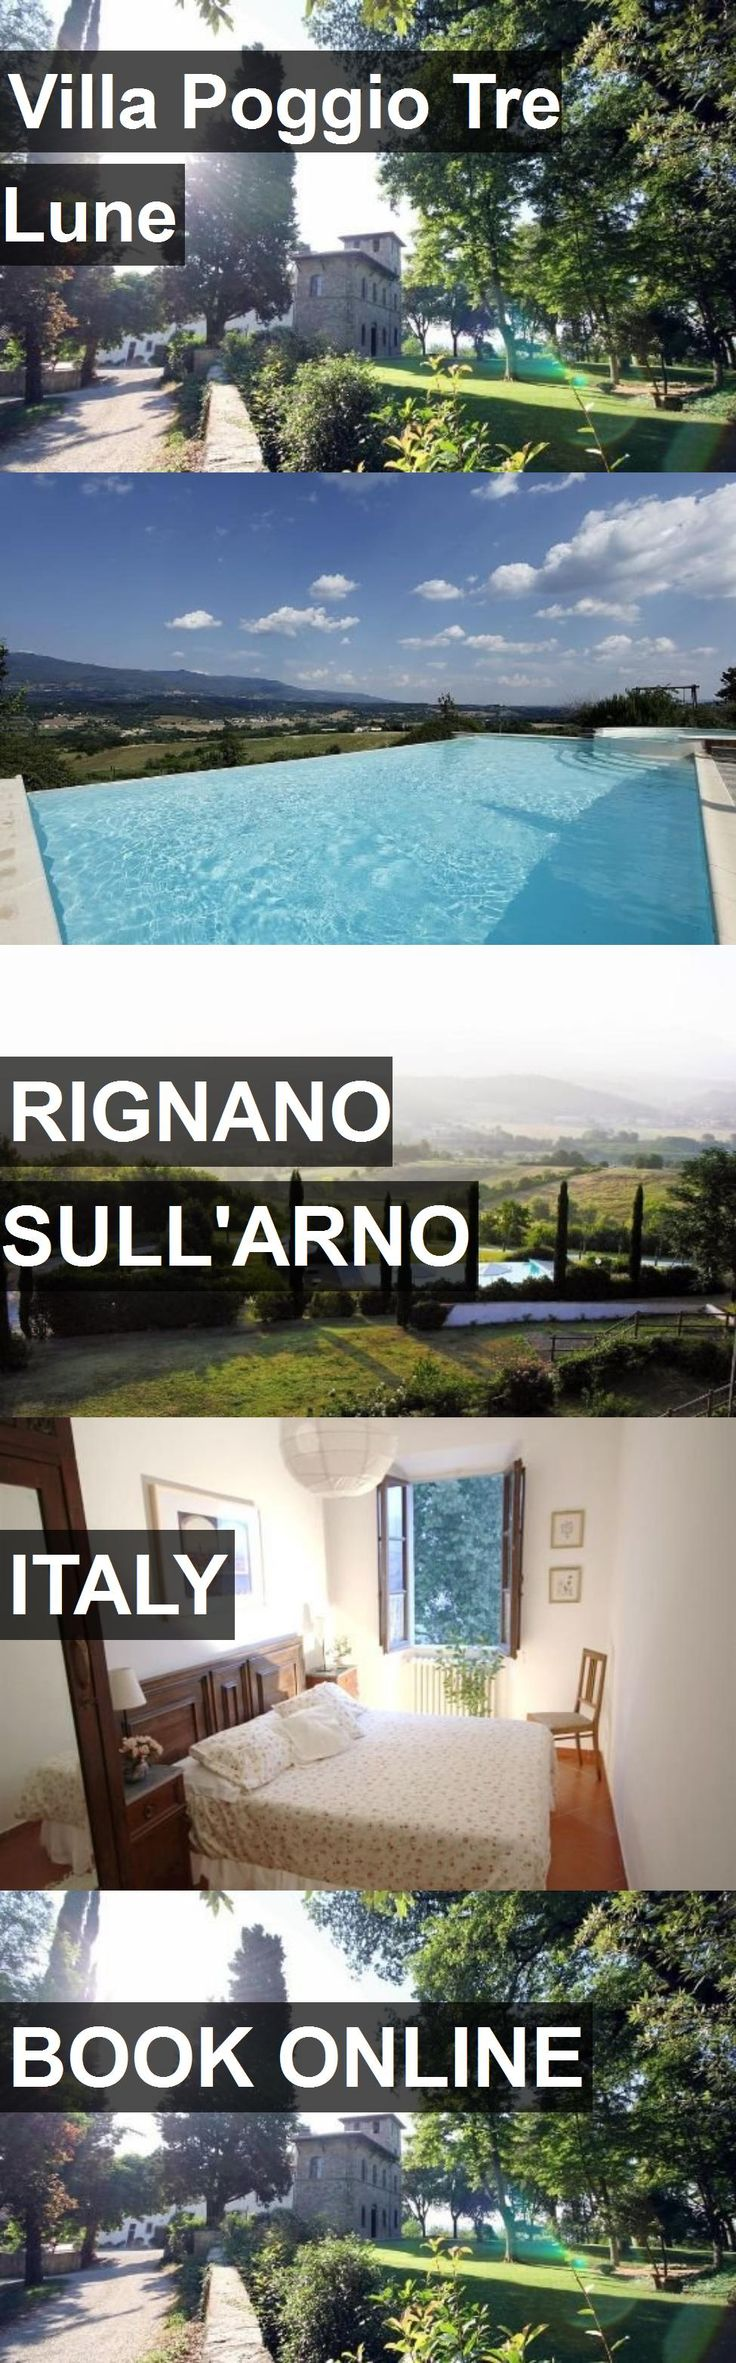 Hotel Villa Poggio Tre Lune in Rignano sull'Arno, Italy. For more information, photos, reviews and best prices please follow the link. #Italy #Rignanosull'Arno #VillaPoggioTreLune #hotel #travel #vacation